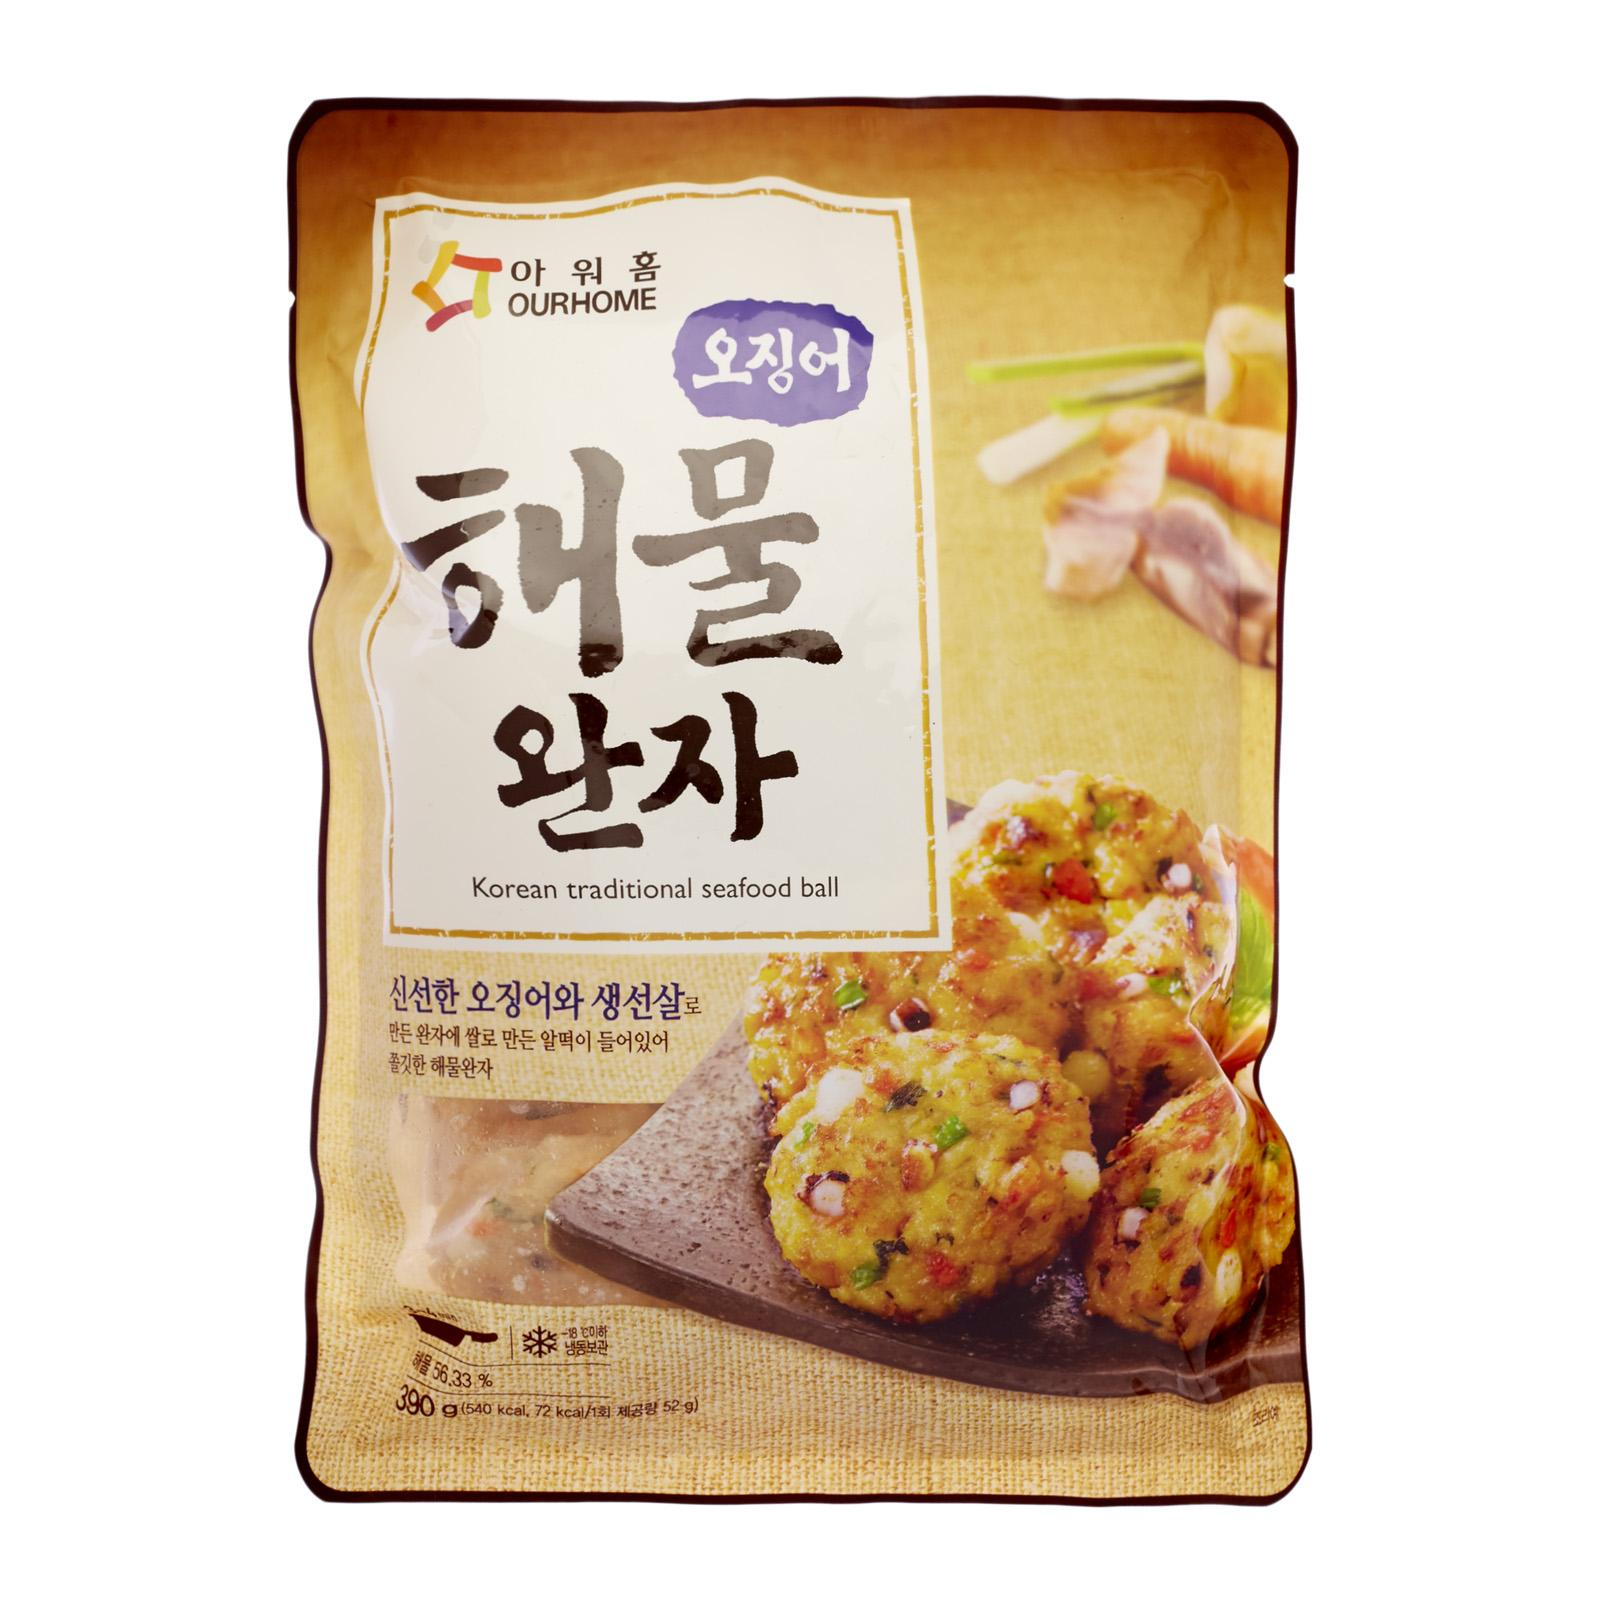 Ourhome Korea Traditional Seafood Ball - Frozen By Redmart